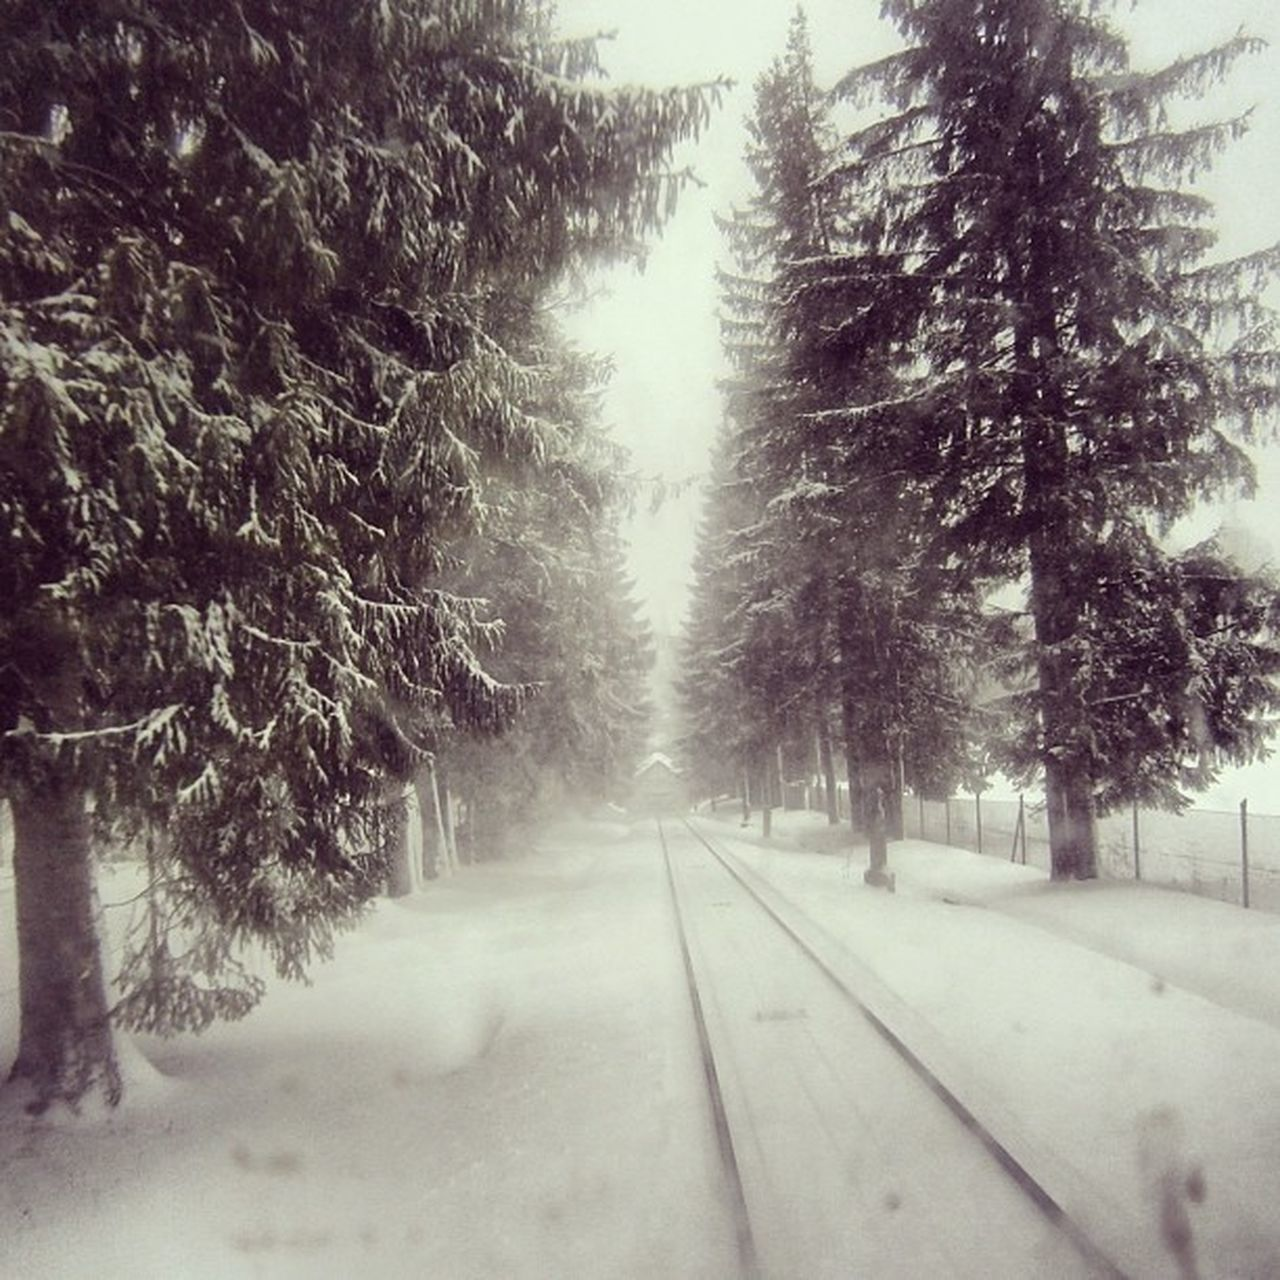 winter, cold temperature, snow, tree, weather, nature, transportation, railroad track, no people, rail transportation, beauty in nature, outdoors, day, landscape, scenics, forest, snowing, sky